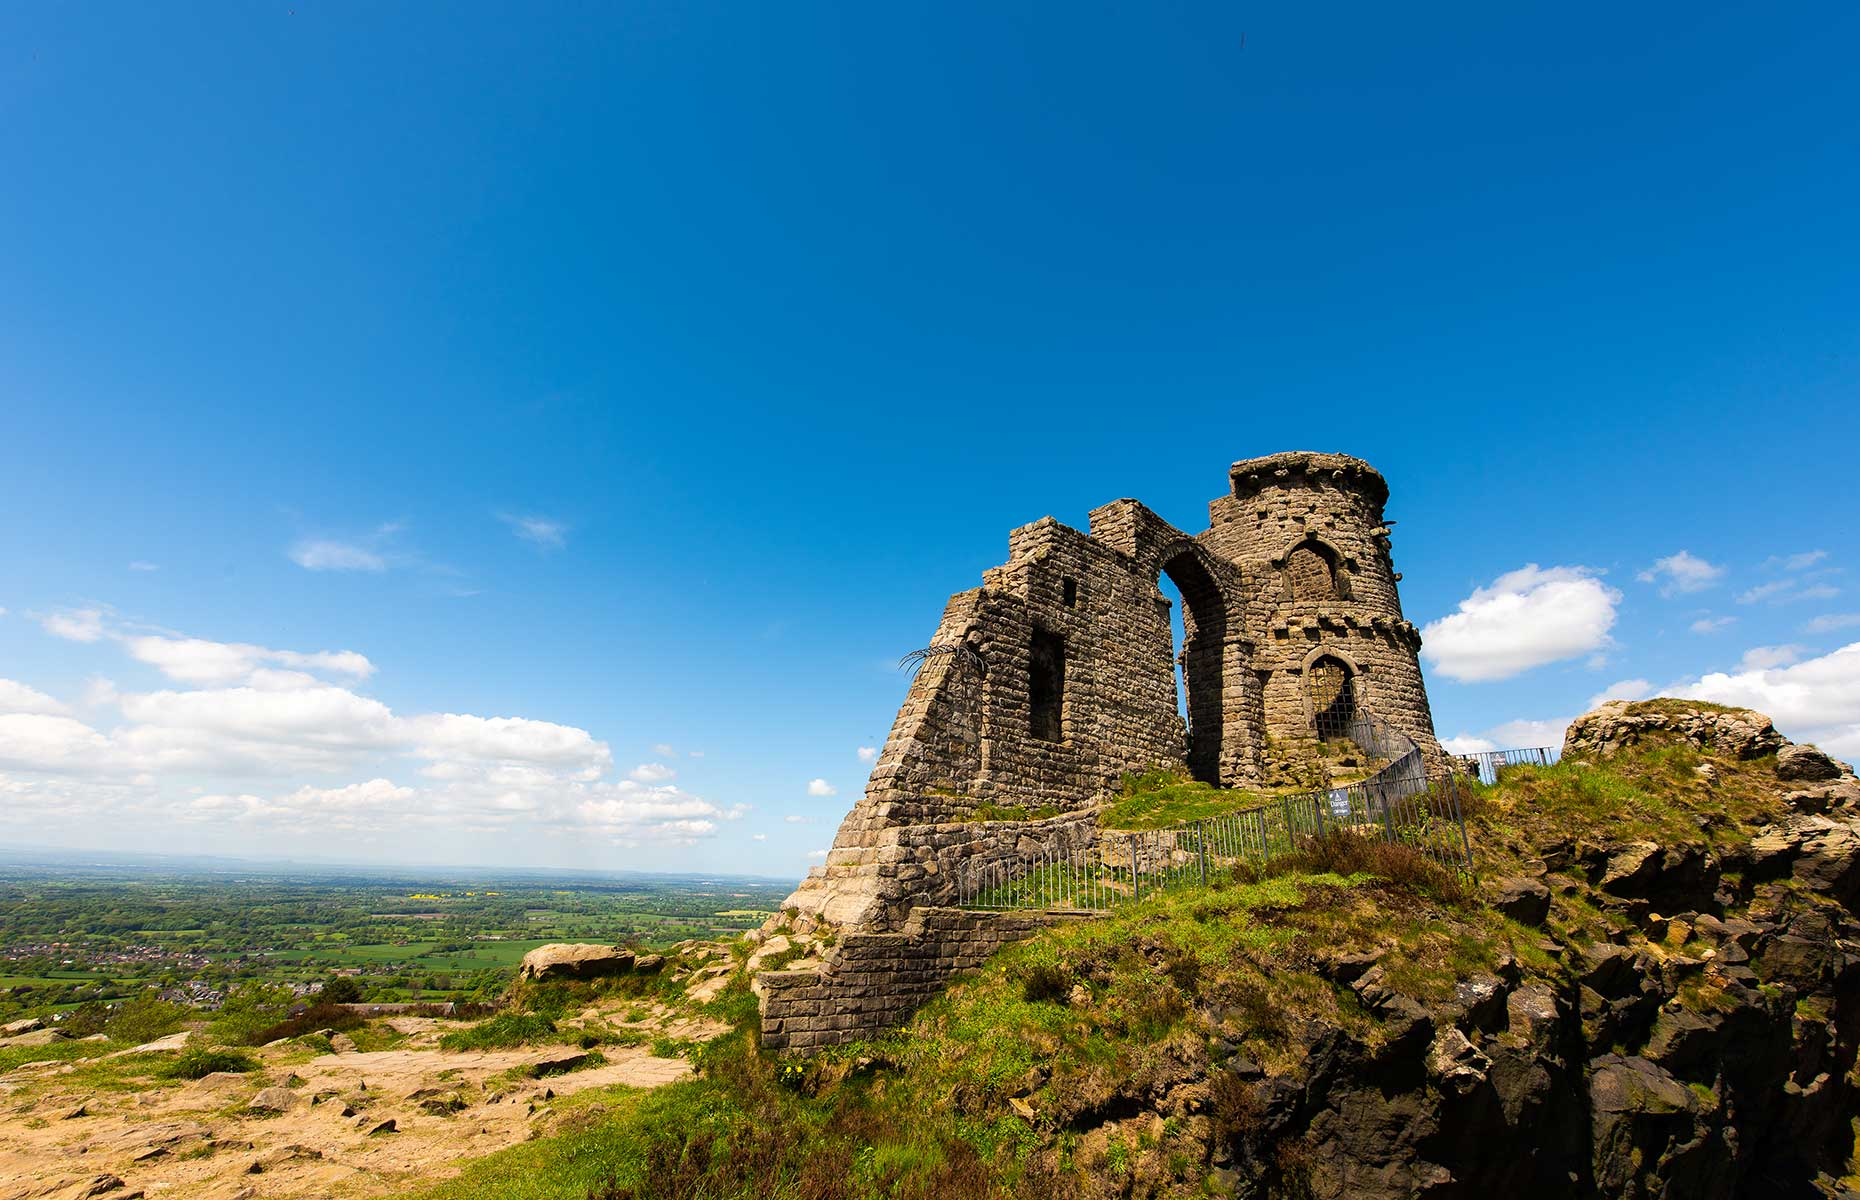 Mow Cop Folly (Image: RMC42/Shutterstock)